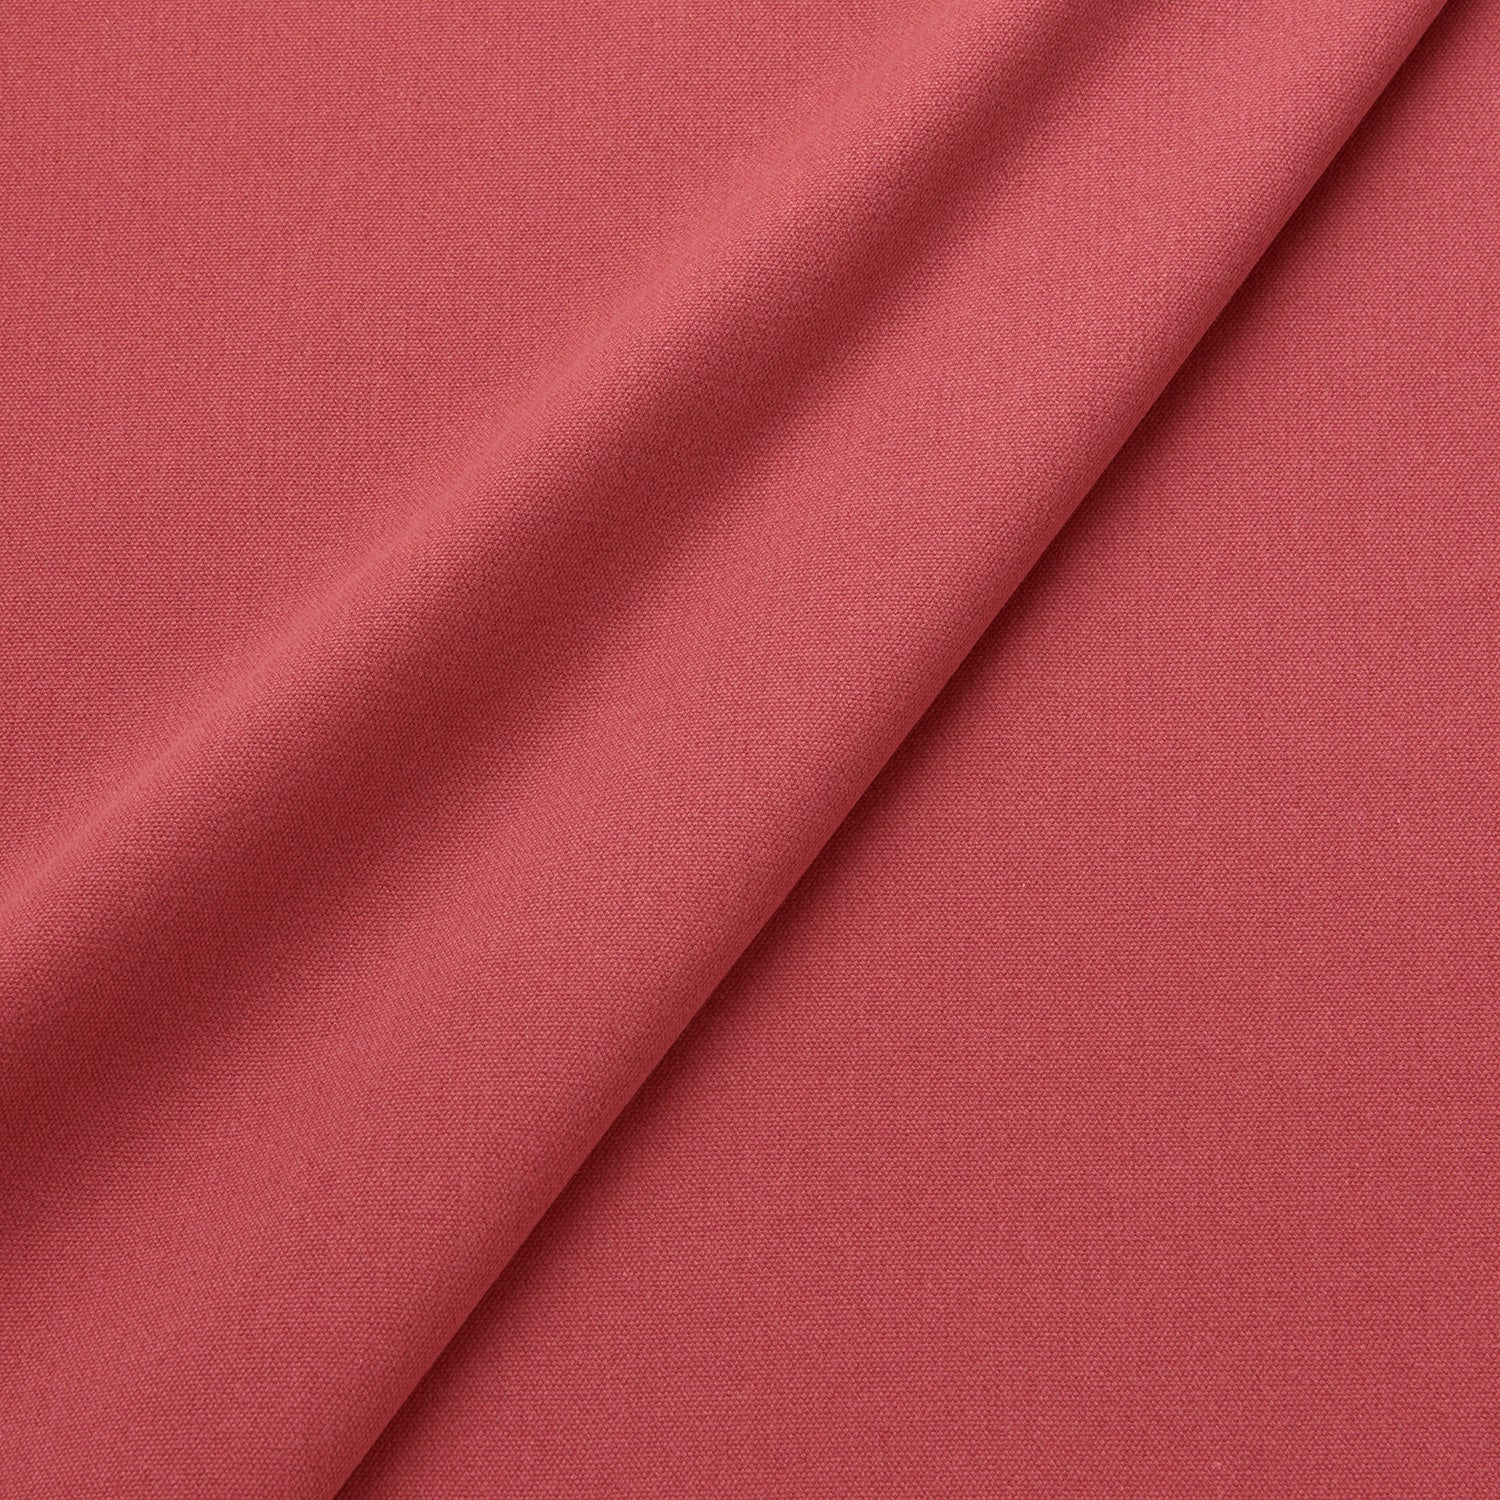 Fabric swatch of a eco-friendly plain red fabric for curtains and upholstery